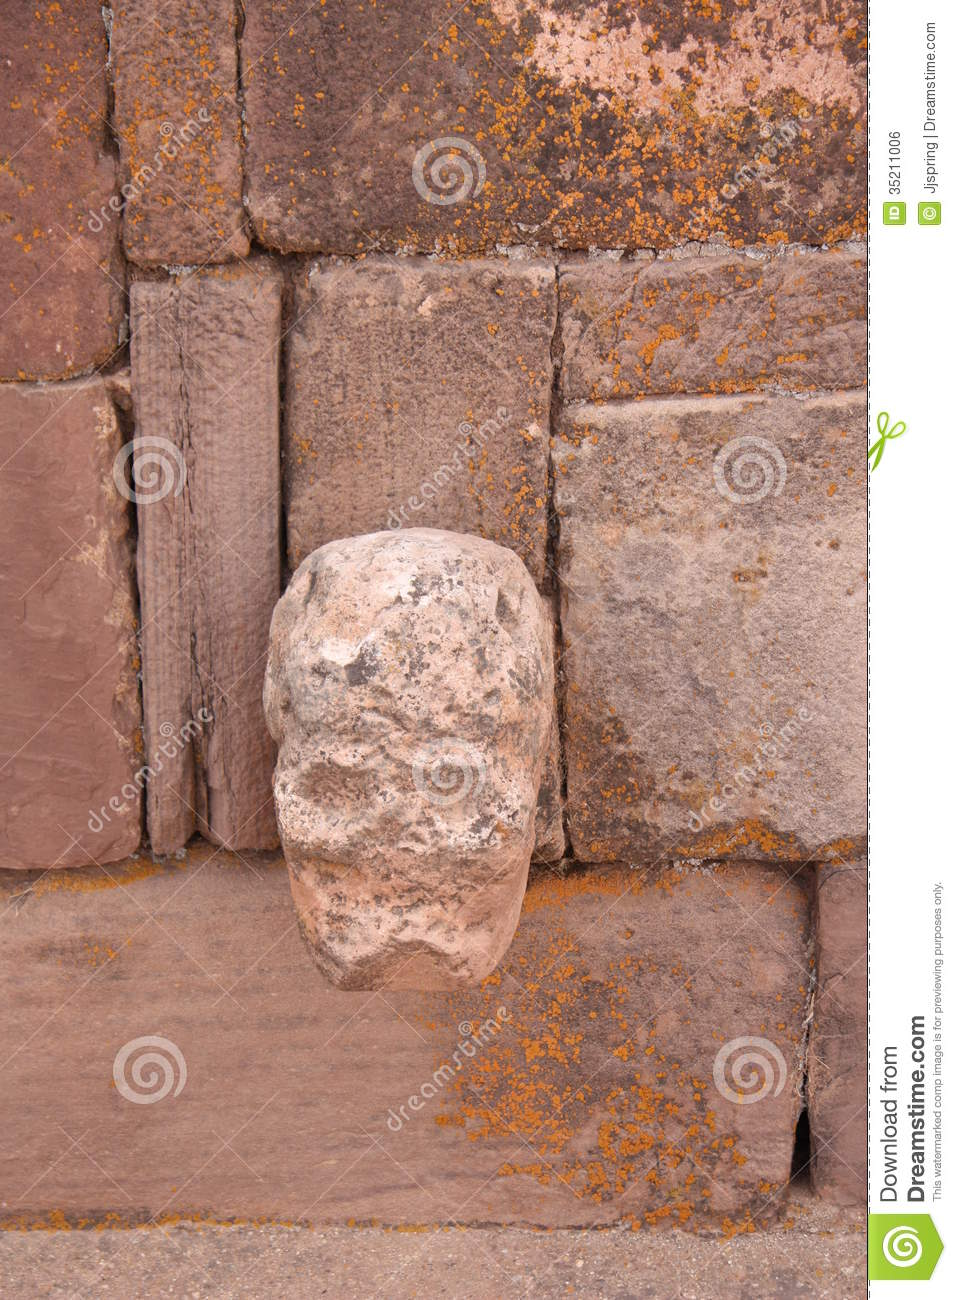 Mysterious Temples In World: Mysterious Skull Head In Semi-Underground Temple